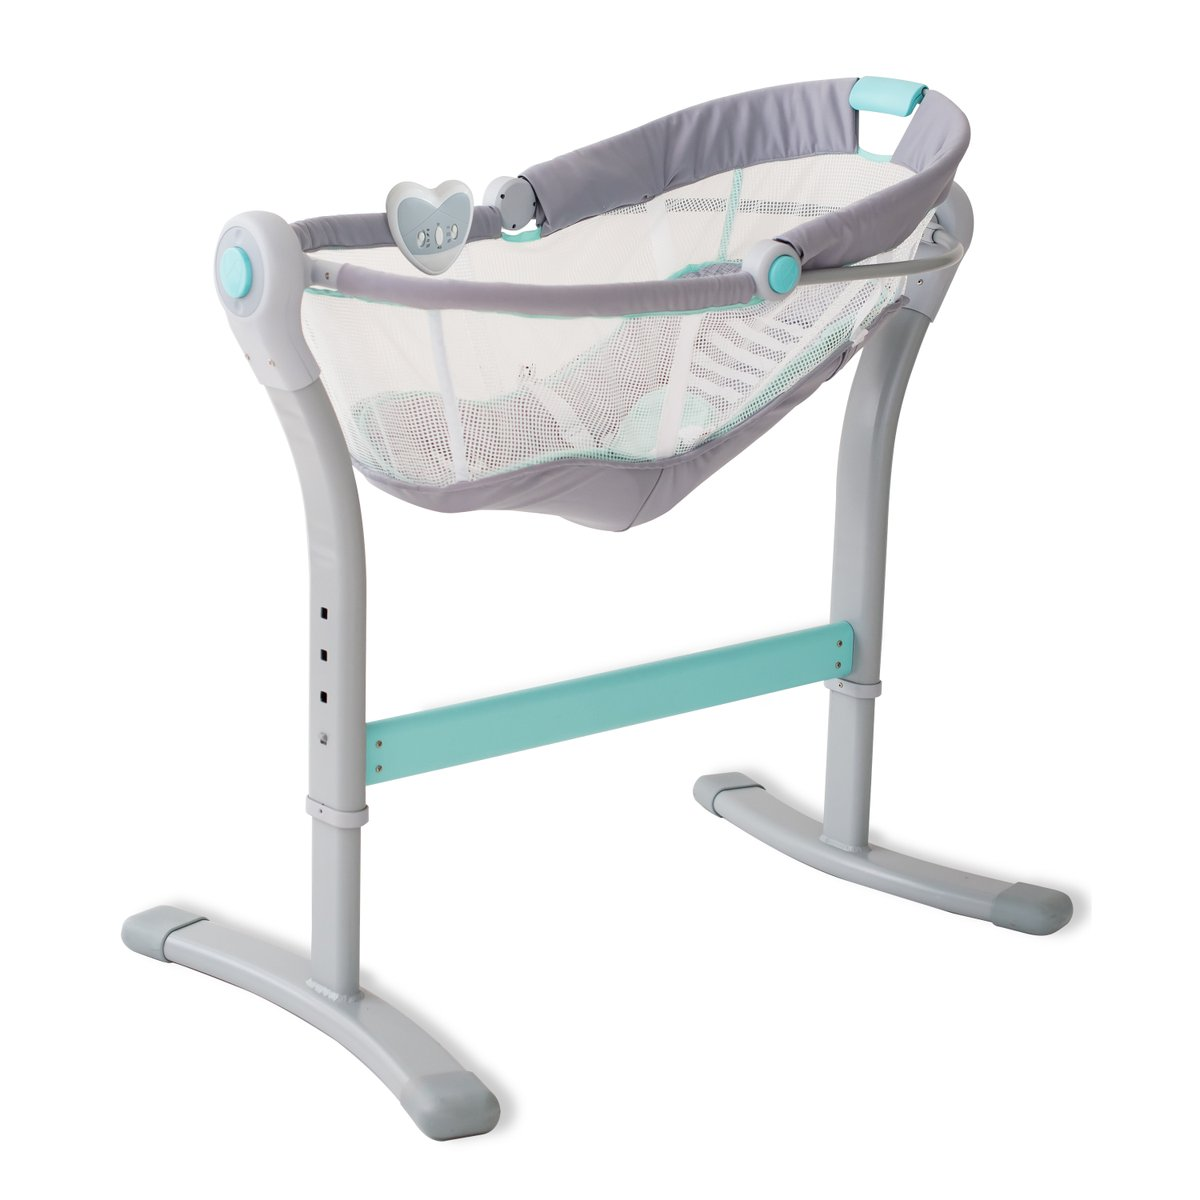 Graco, Summer Infant, Delta Children and Evenflo recall 165,000 inclined infant sleepers